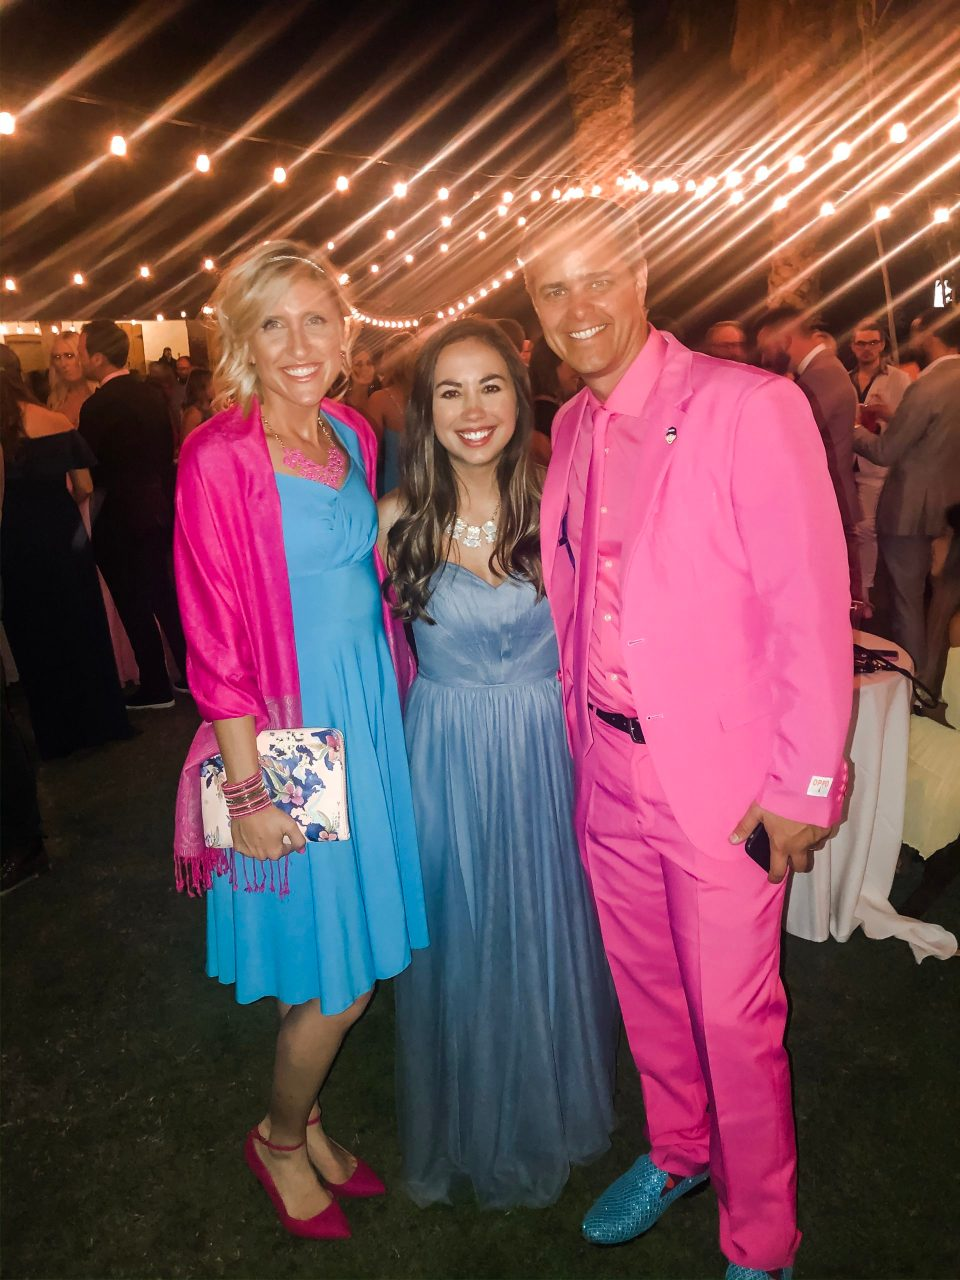 With Todd and Elisa Watson, co-owners of Showit at the Showit United conference in 2019!